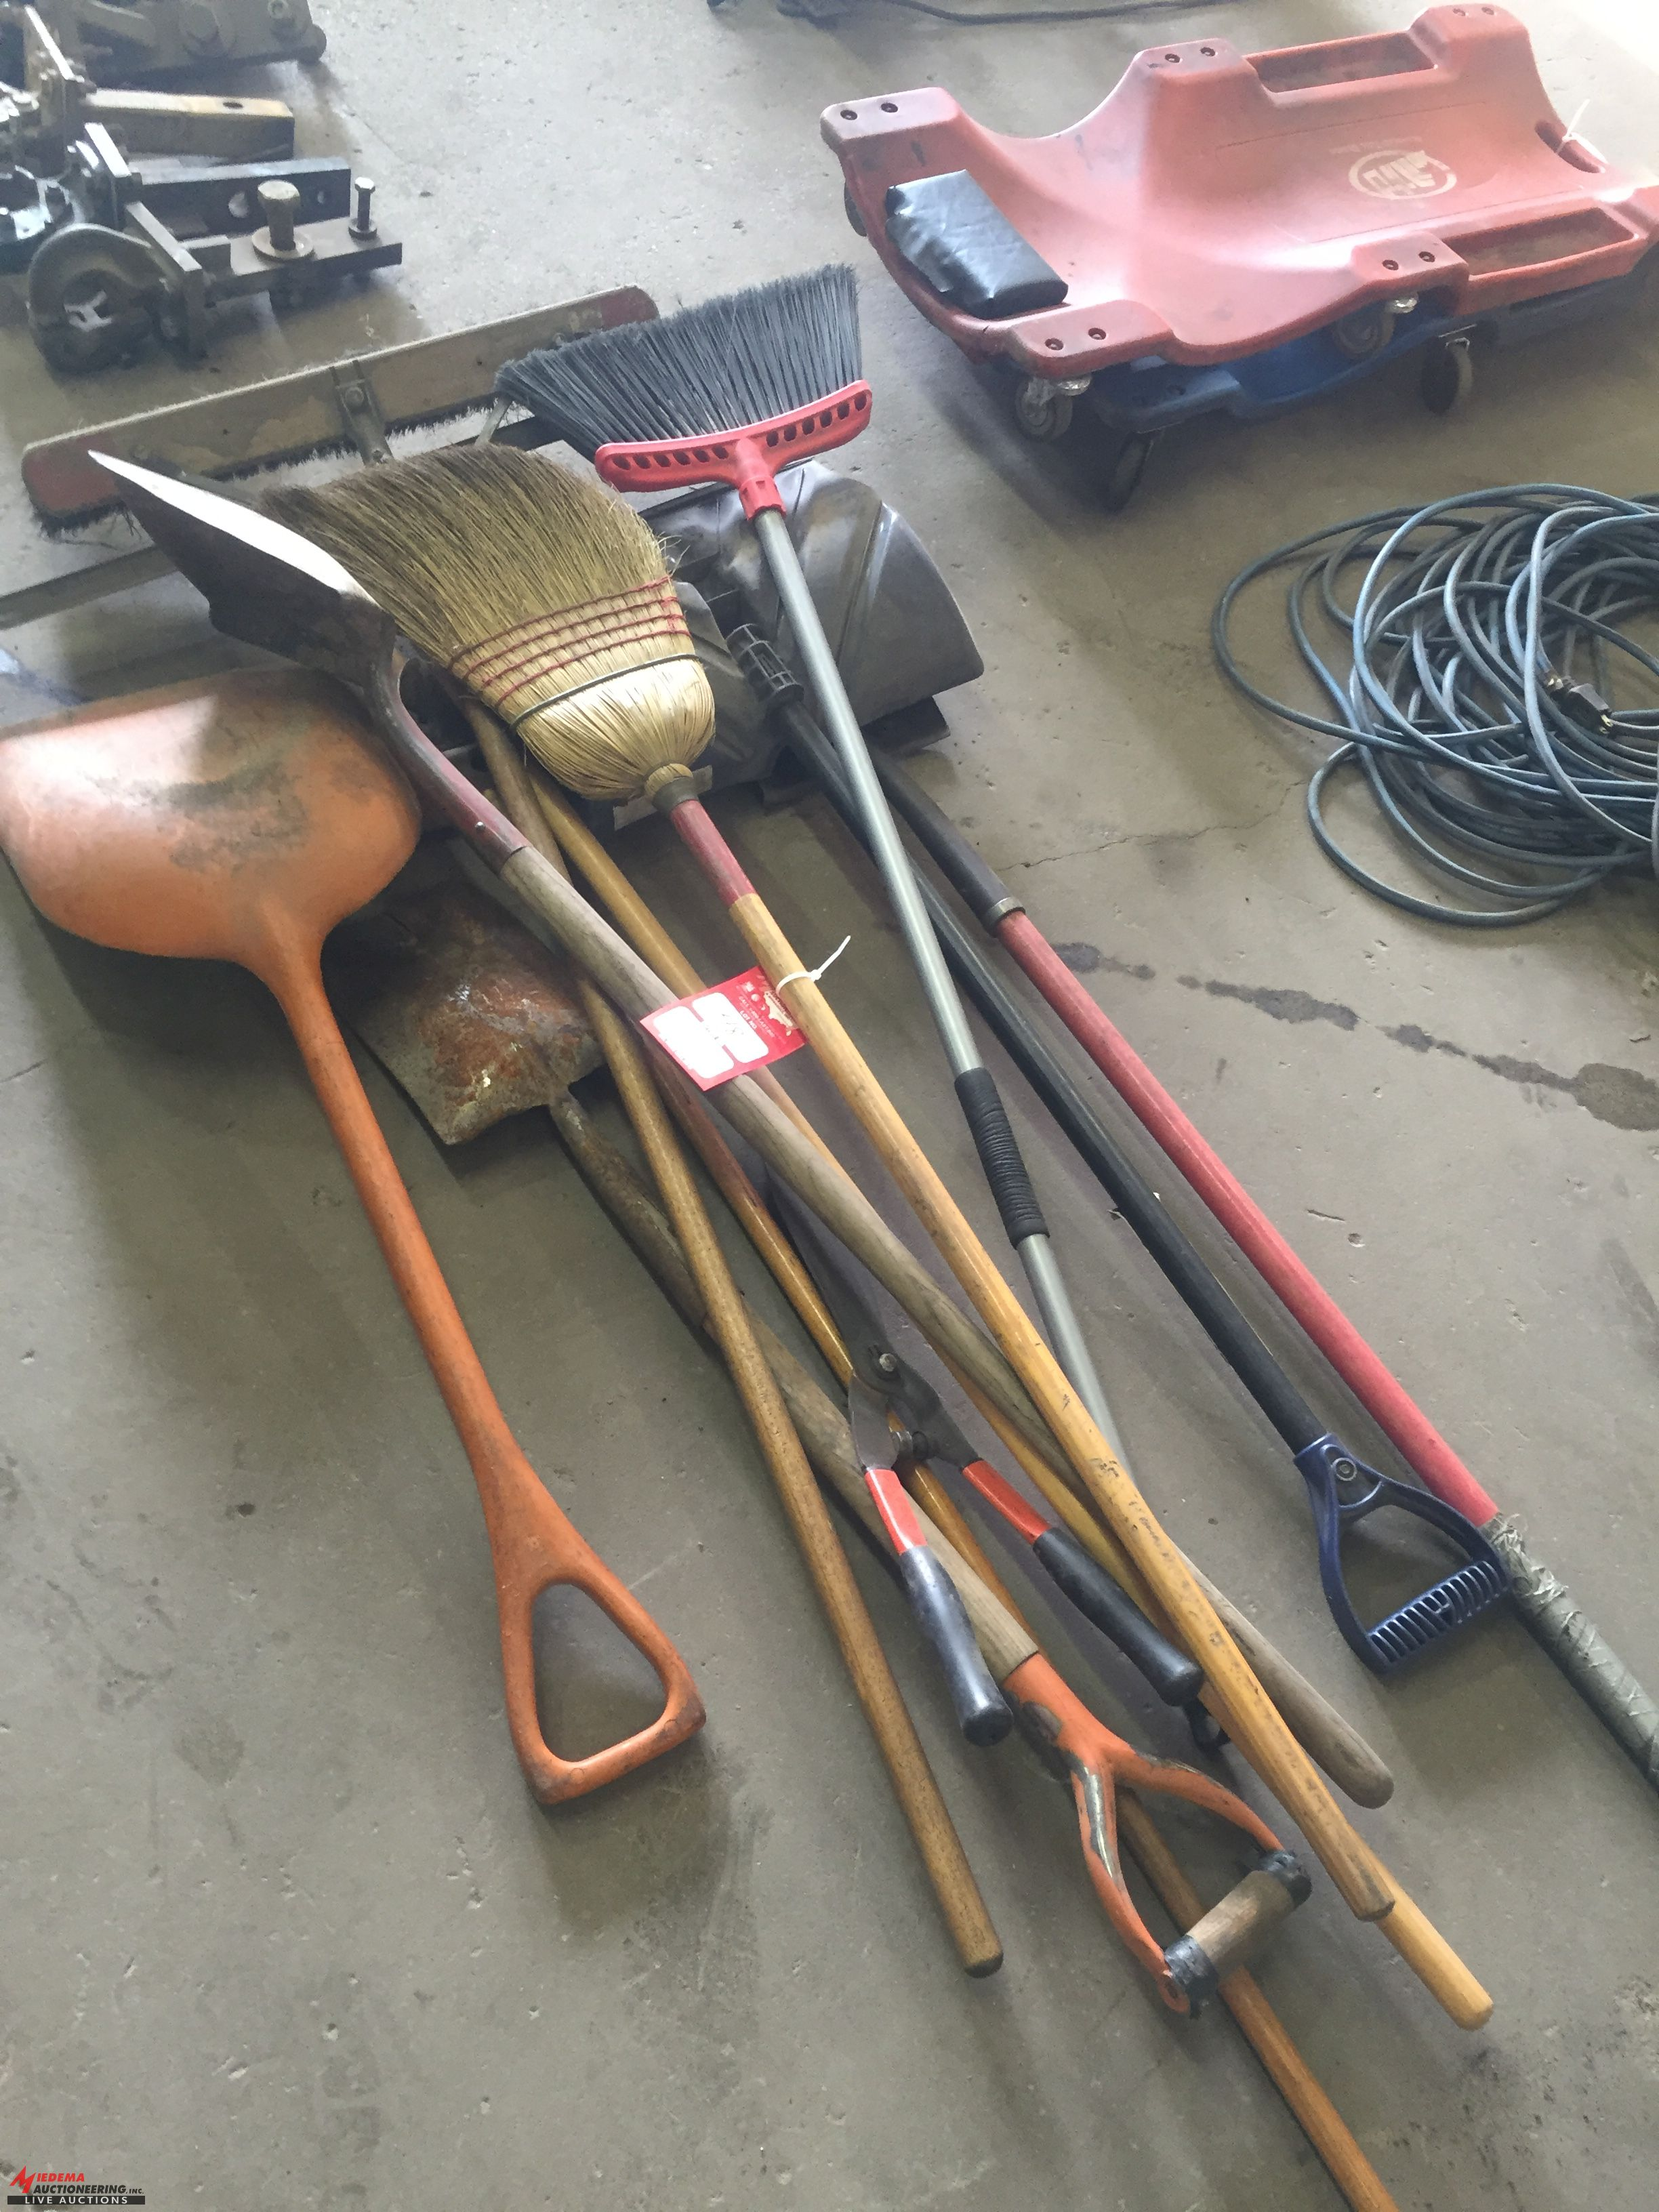 Lot 48 - ASSORTED BROOMS, SHOVELS AND MORE [LOCATION: EAST WINANS STREET LOCATION]